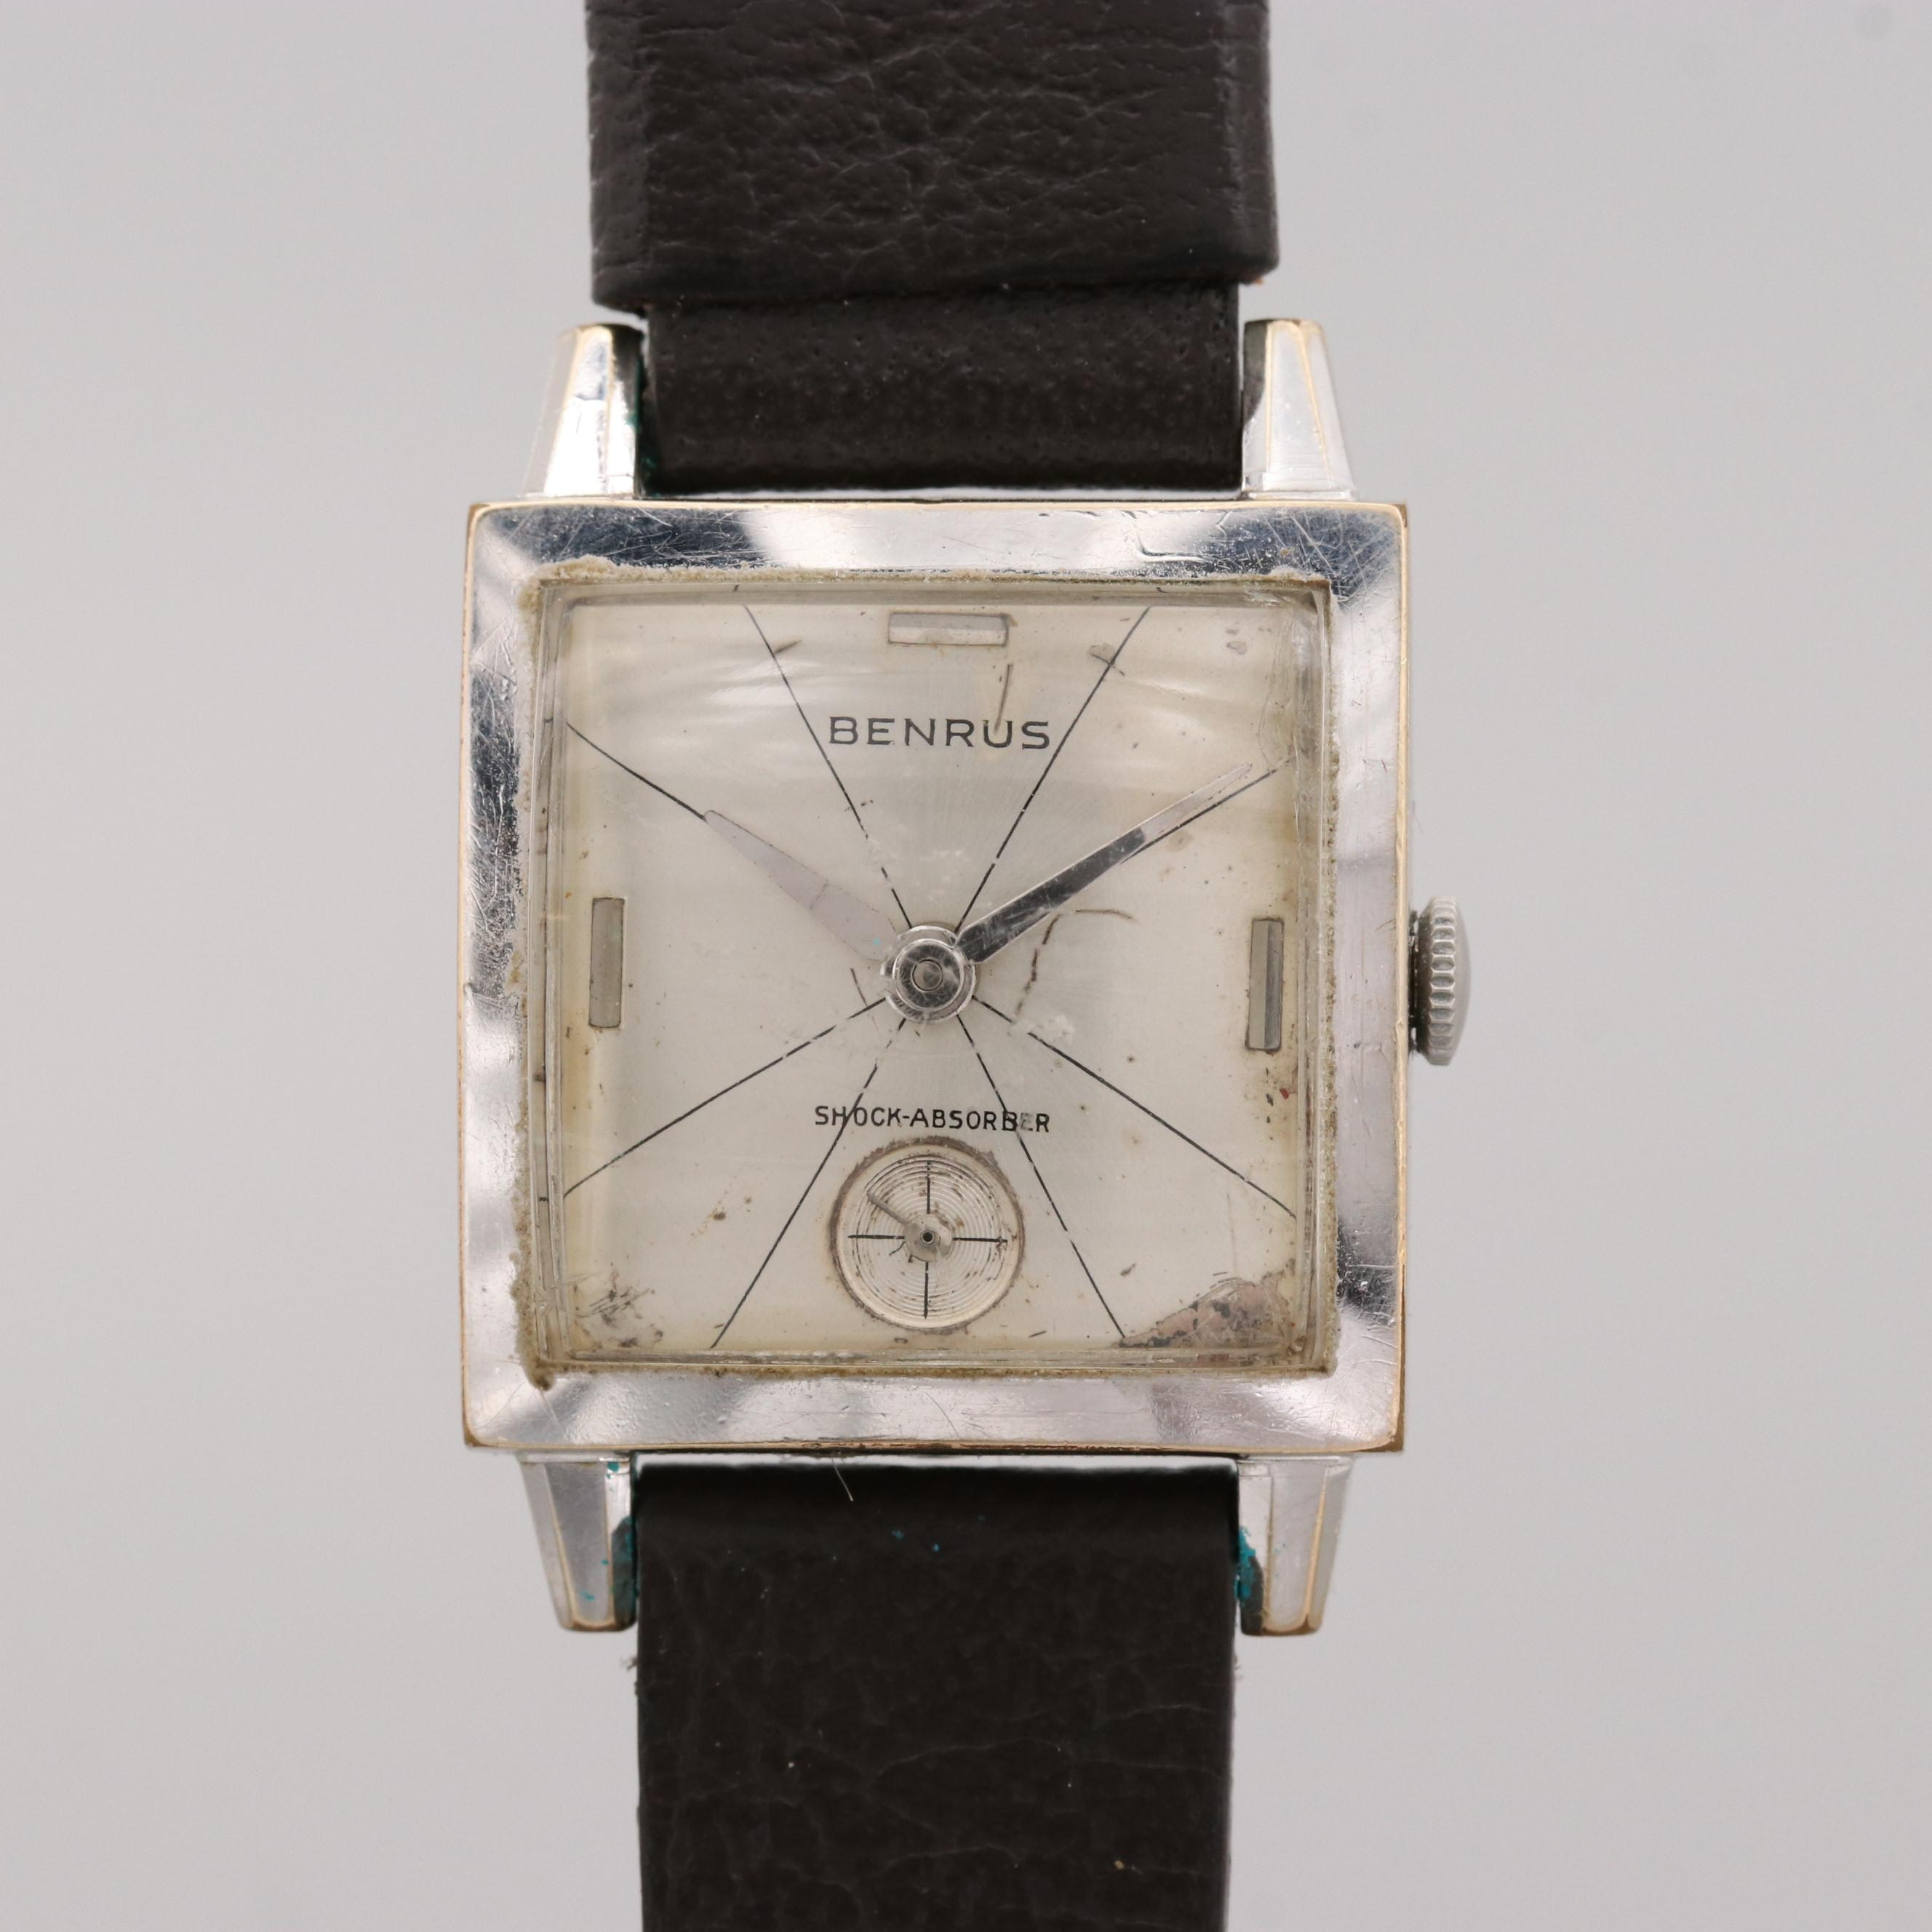 Vintage Benrus Stem Wind Wristwatch